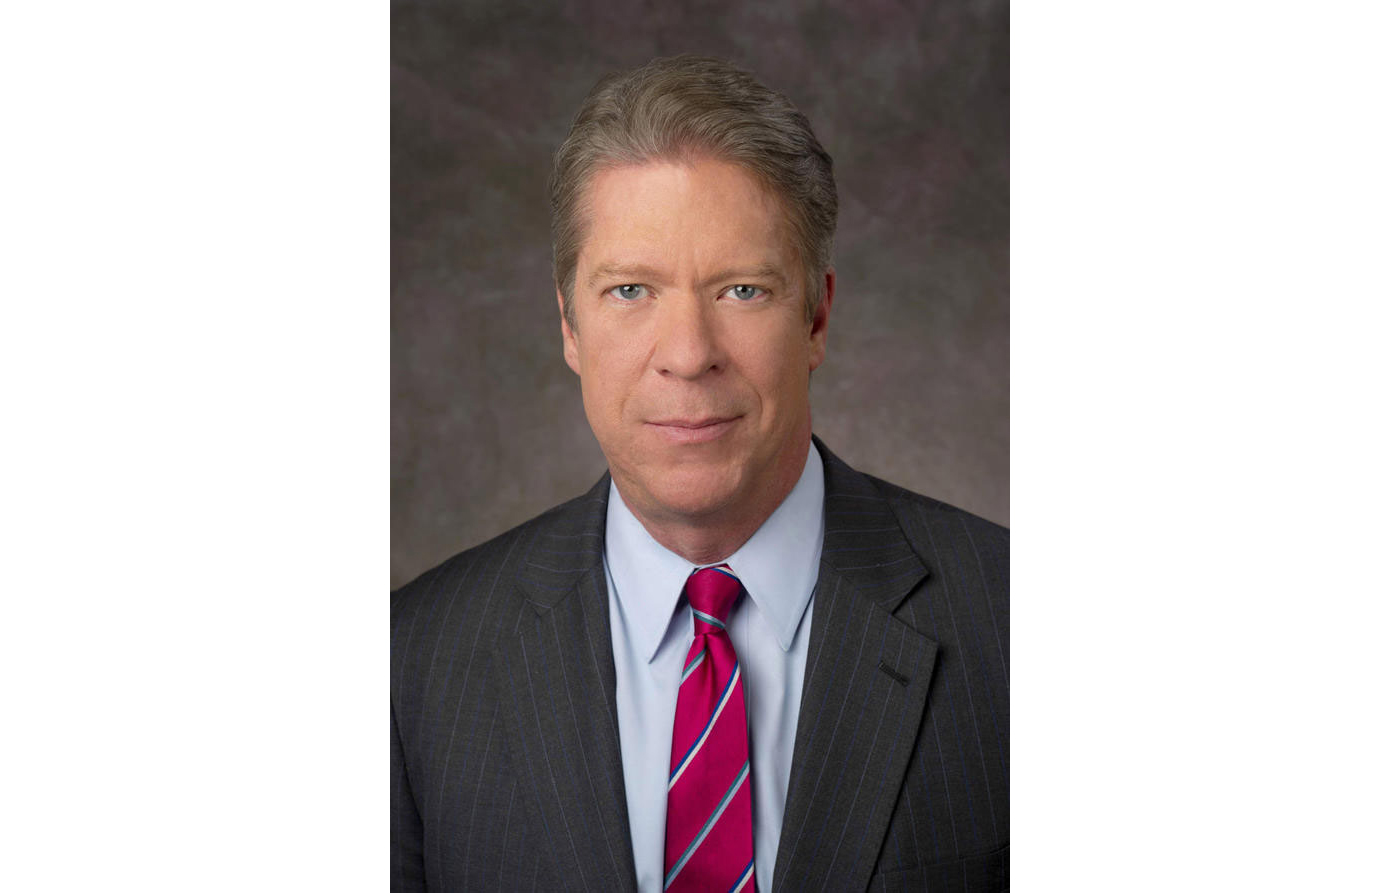 Event - Lecture and Book Signing with Major Garrett